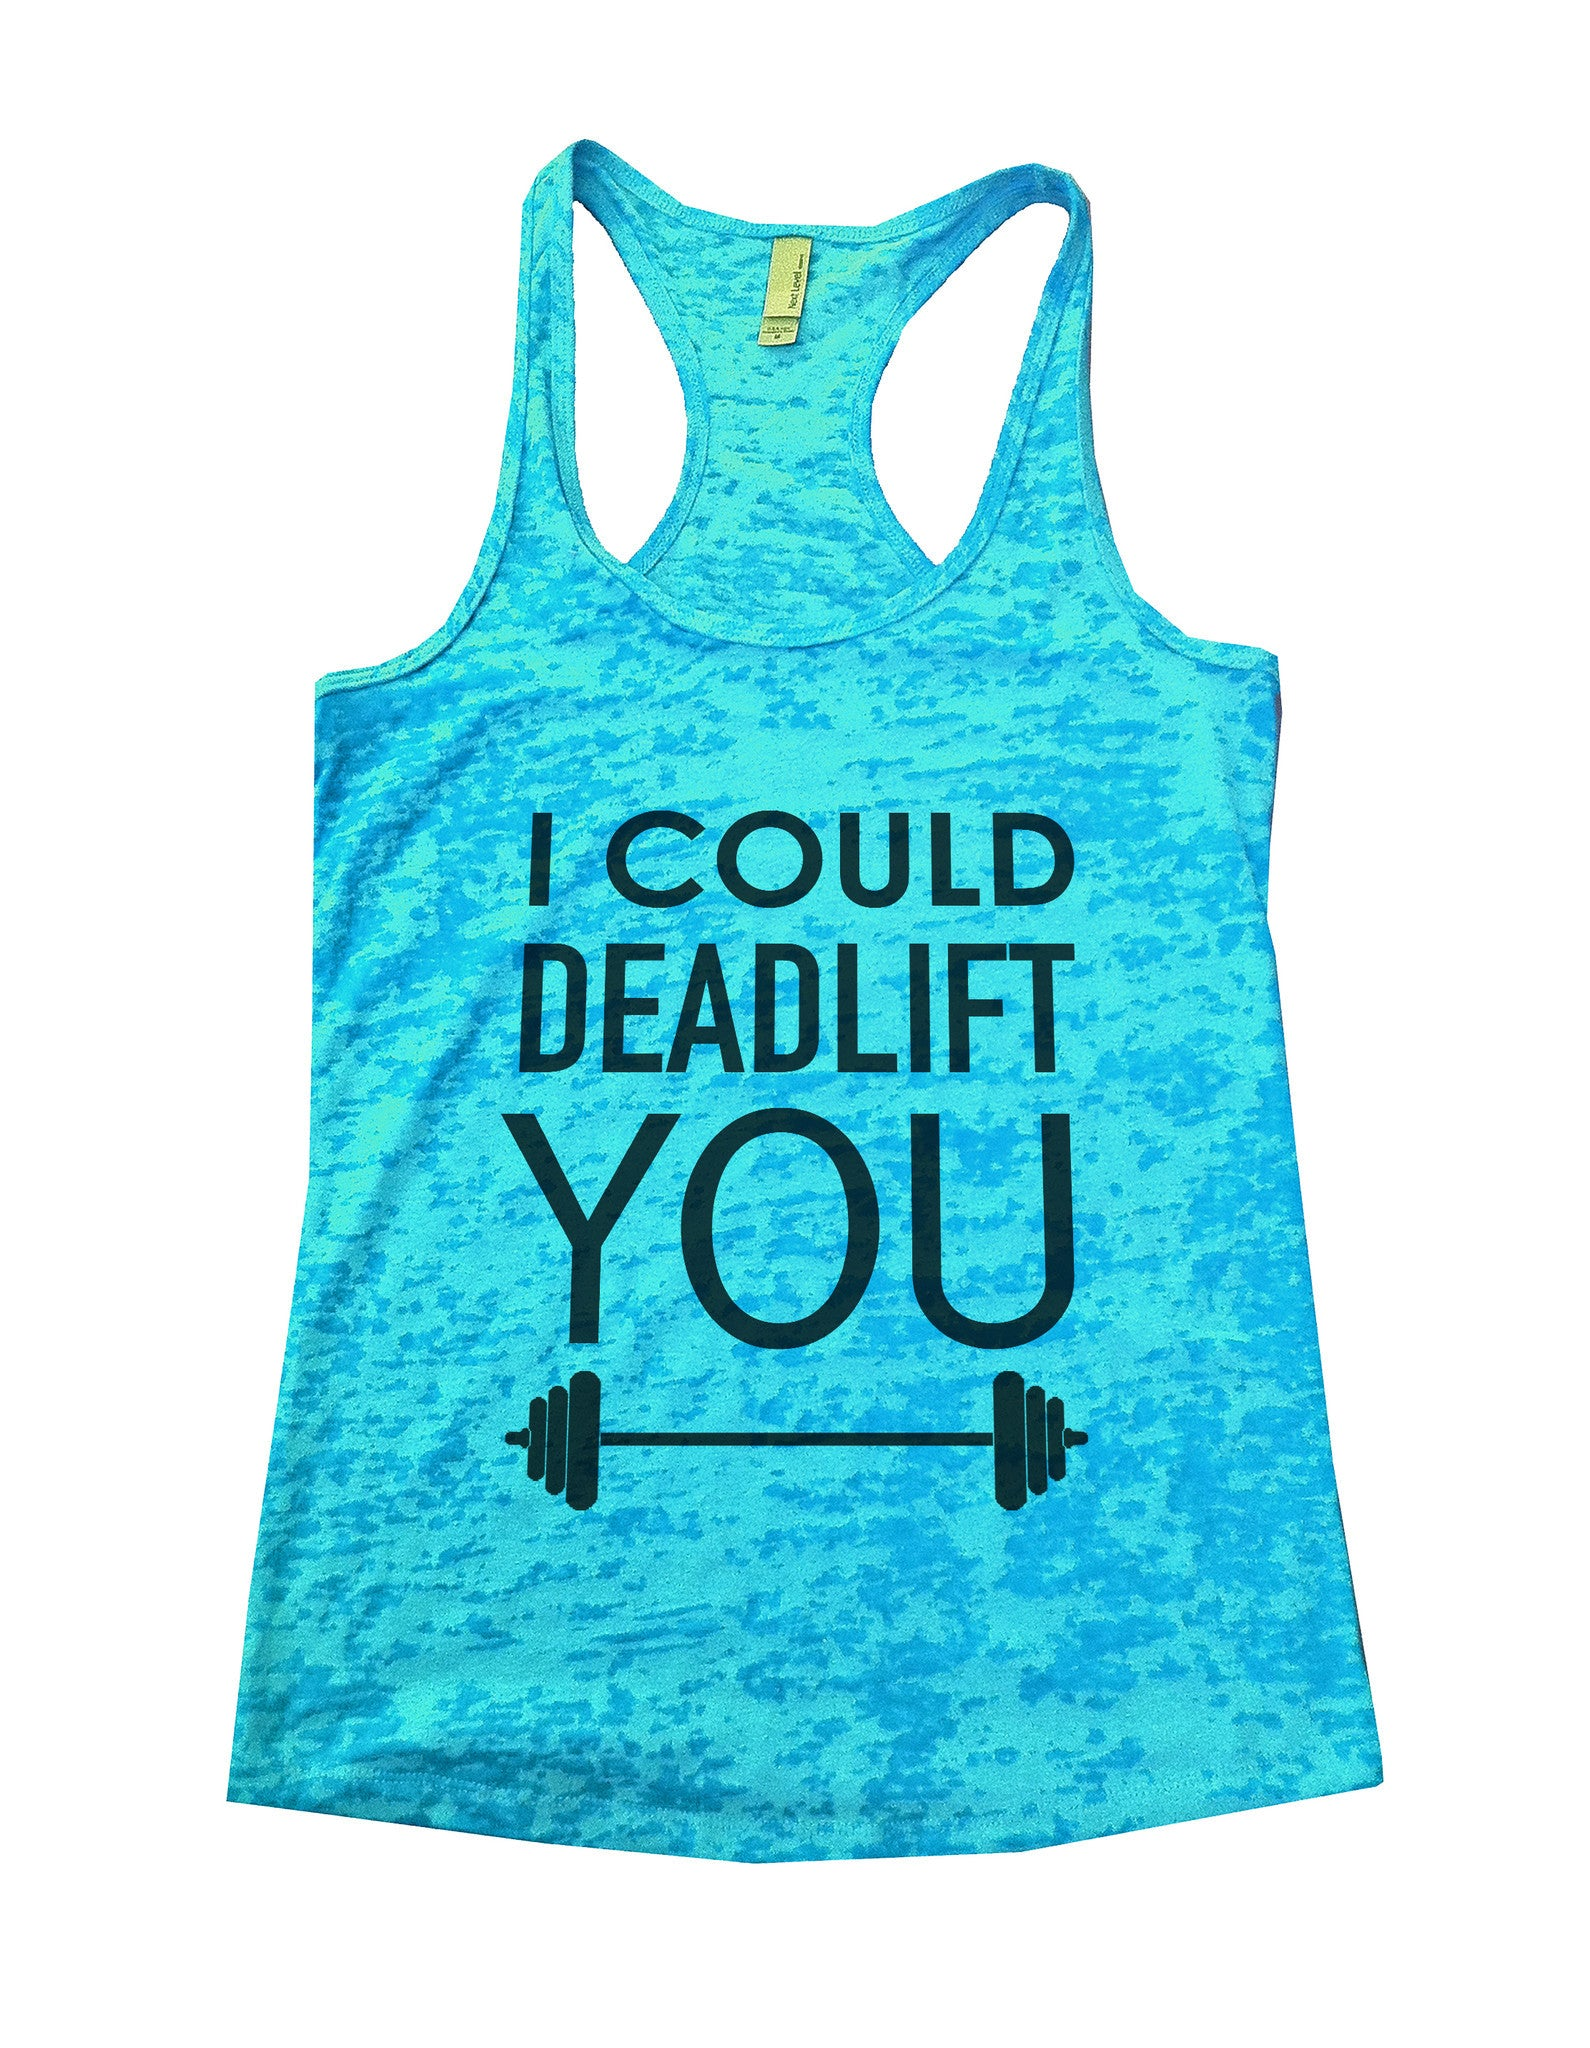 I Could Deadlift You Burnout Tank Top By BurnoutTankTops.com - 552 - Funny Shirts Tank Tops Burnouts and Triblends  - 4